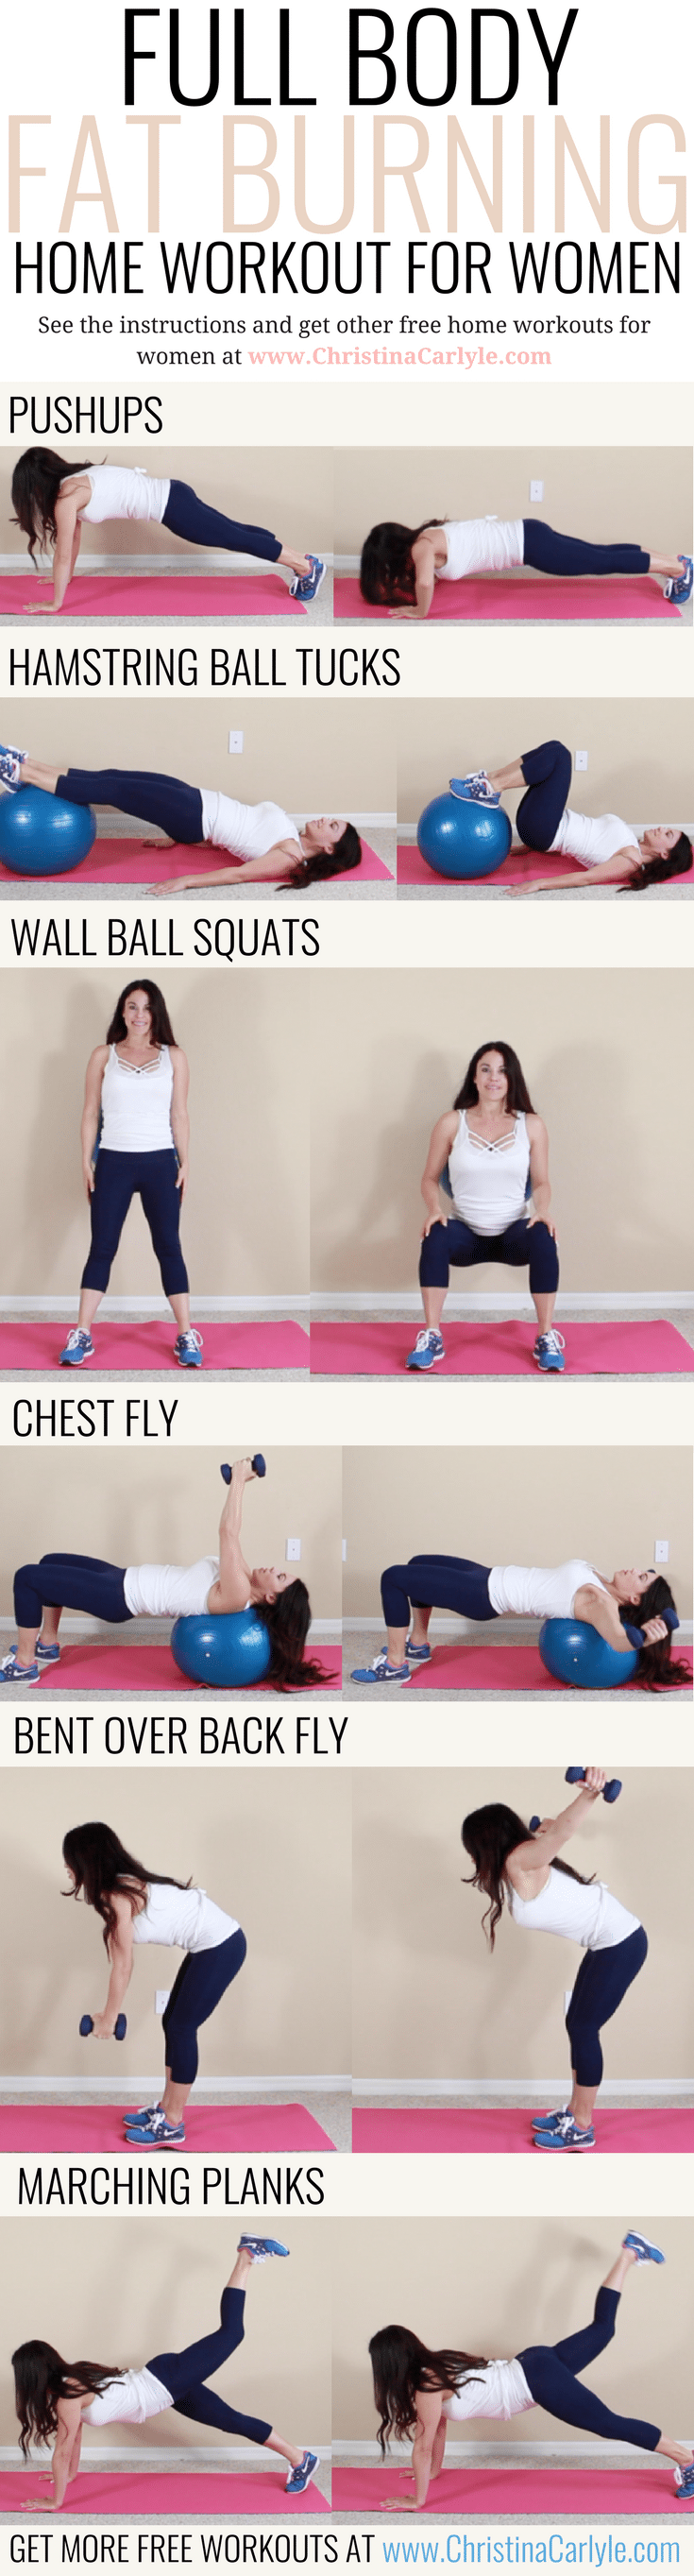 Full Body Fat Burning Workout Routine for Women Christina Carlyle